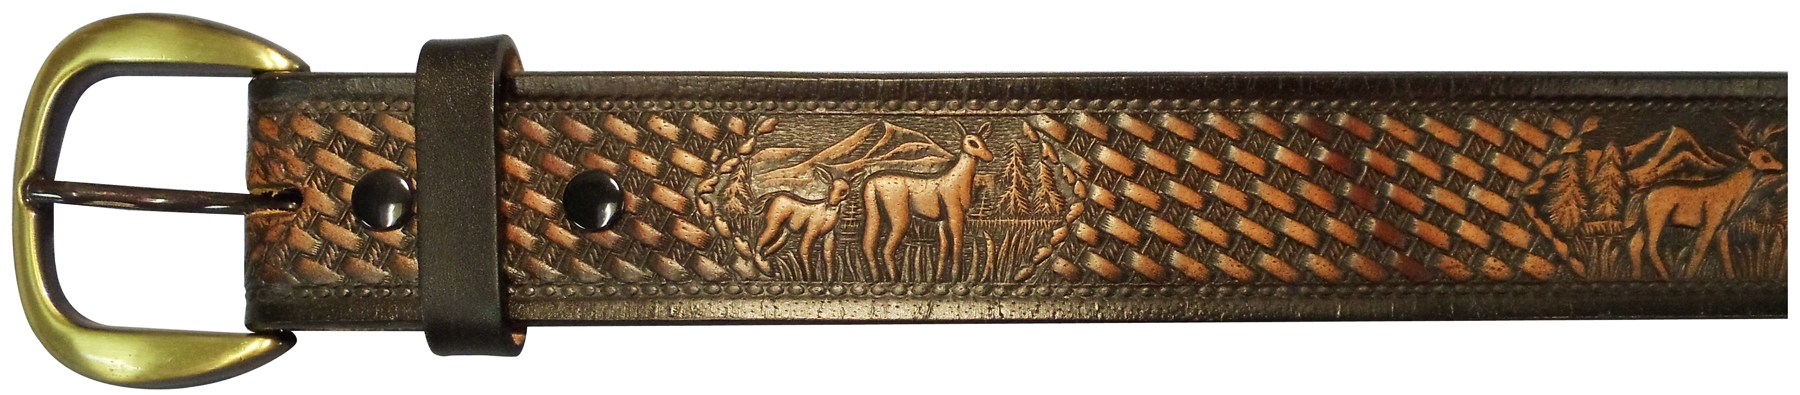 "10610160132 - 32"" Black Leather Belt Deer Design"